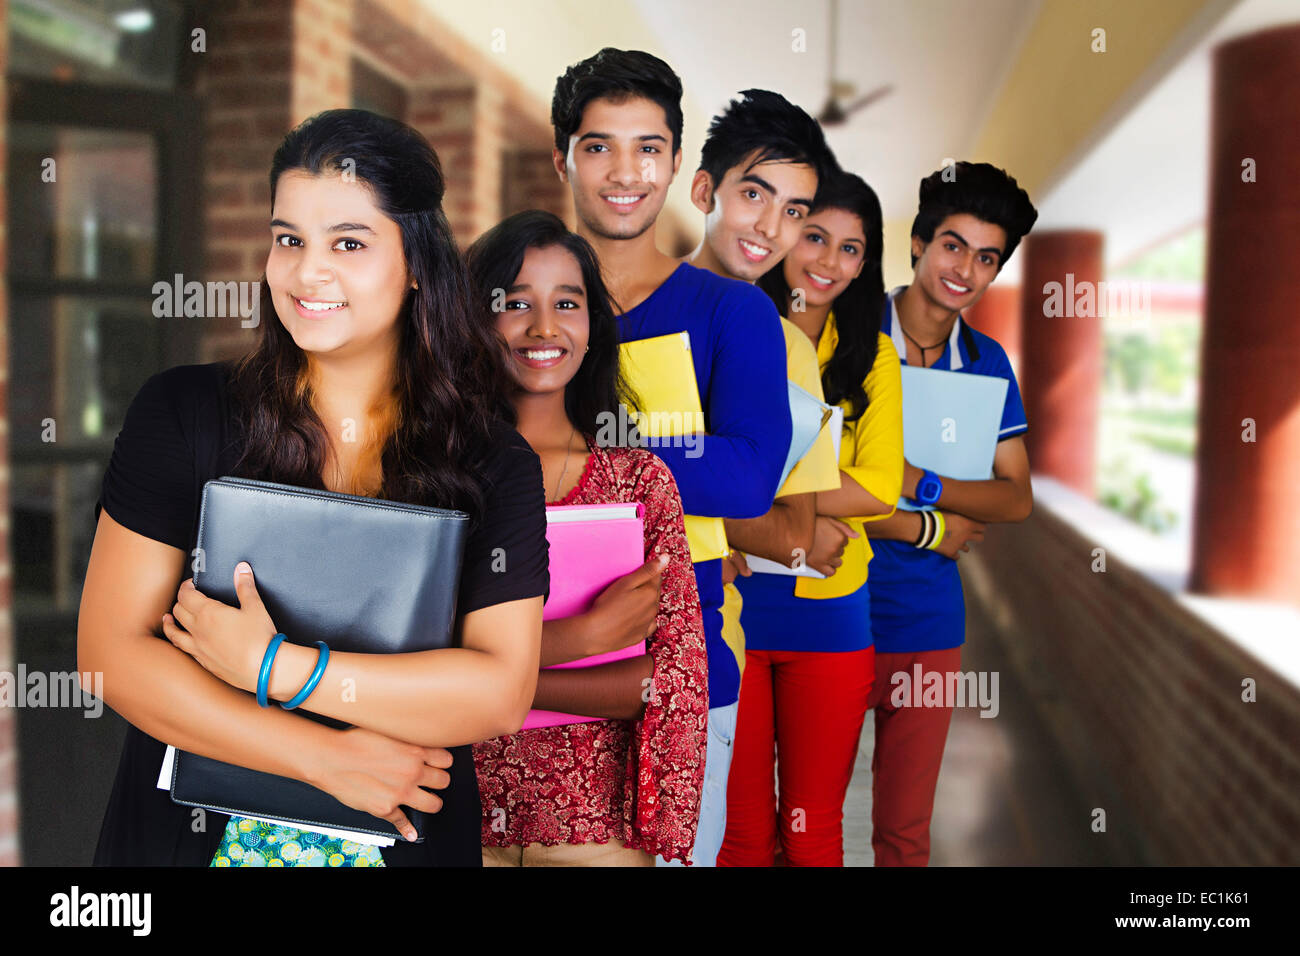 indian College friends Students Stock Photo, Royalty Free ...